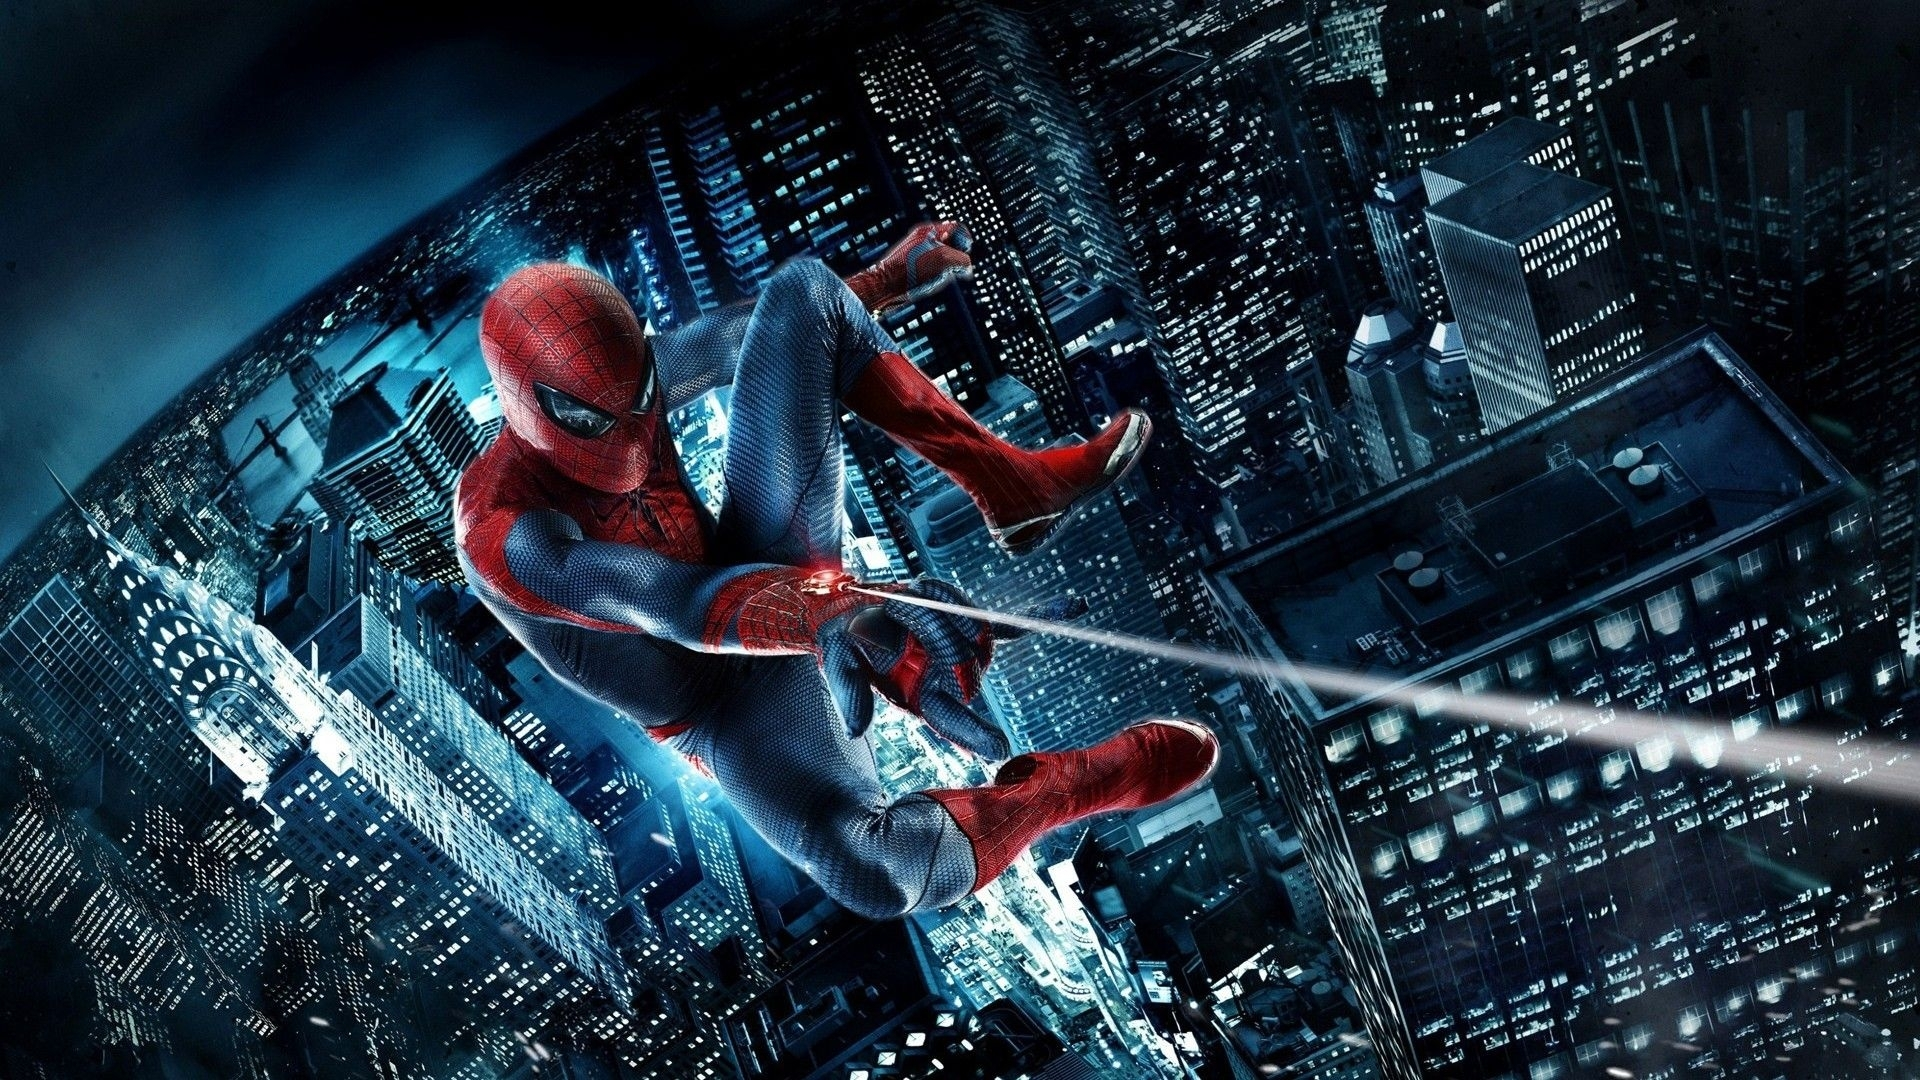 hd black spiderman 3 wallpaper 1080p full size - hirewallpapers